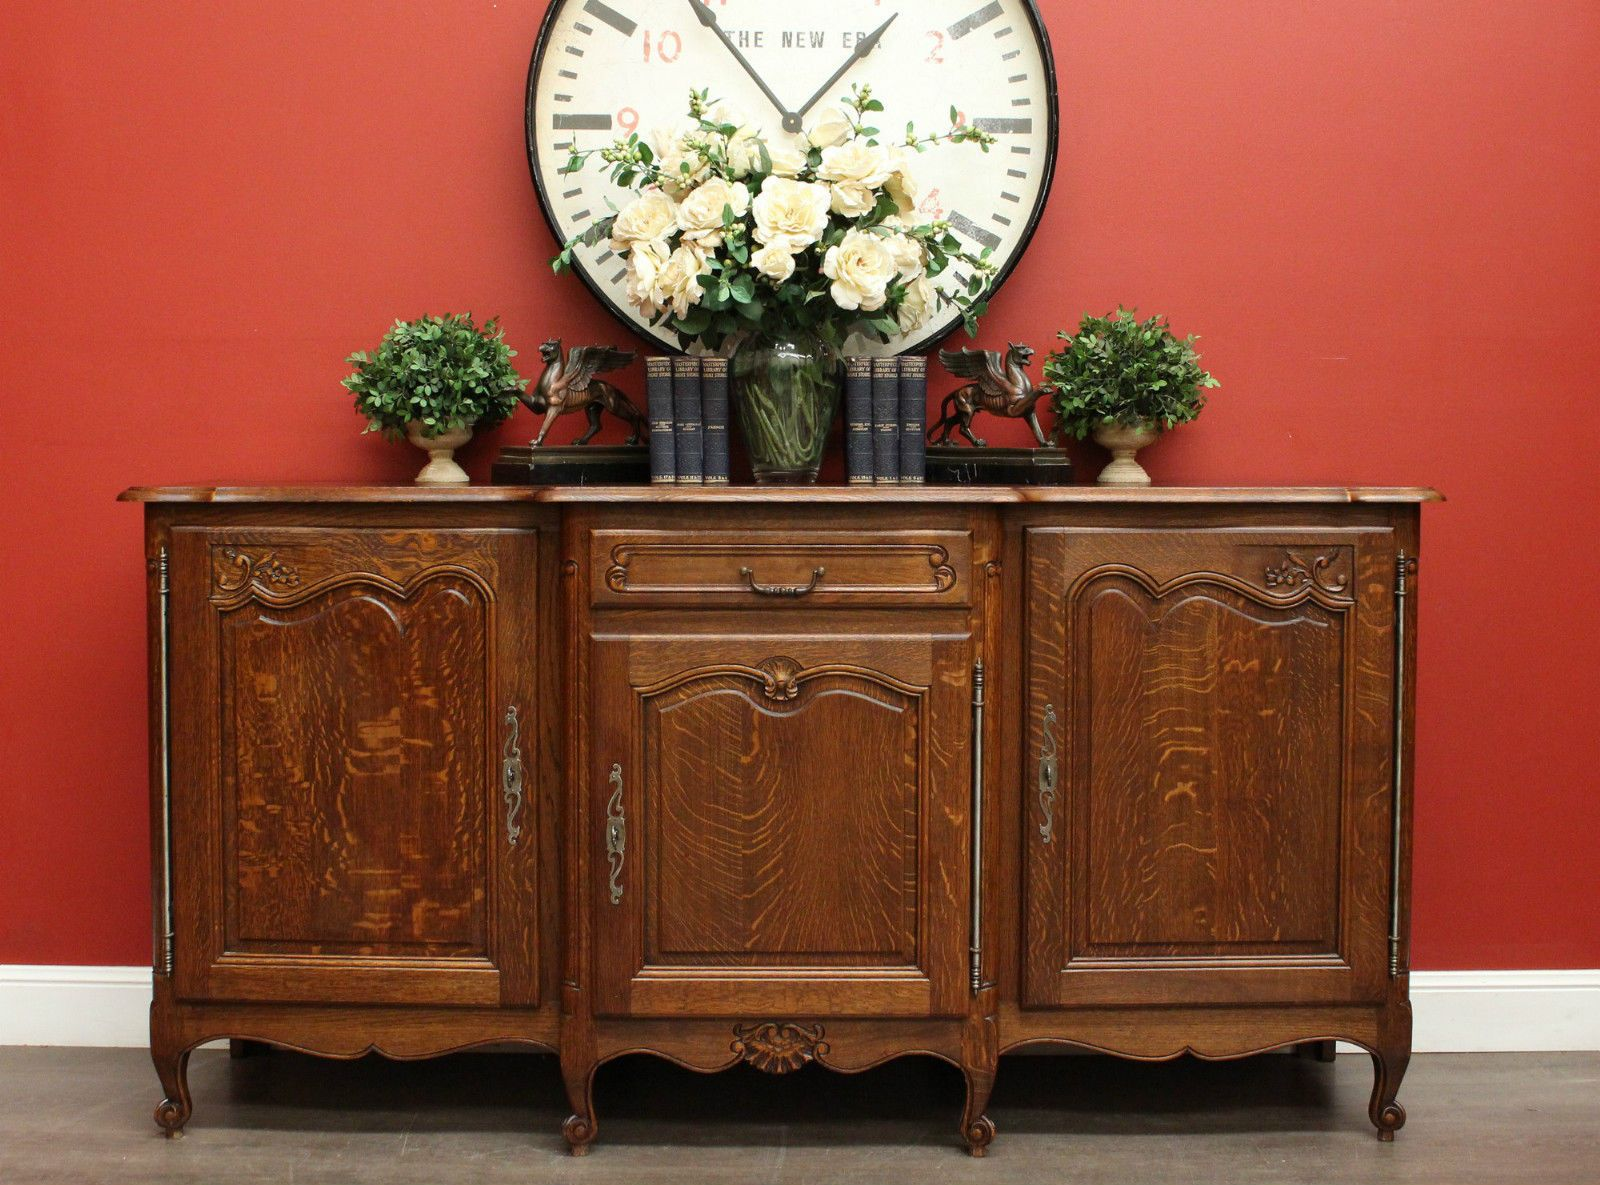 bassett mid credenza with dresser furniture vintage drawers sideboard cupboards cupboard pin buffet century modern and